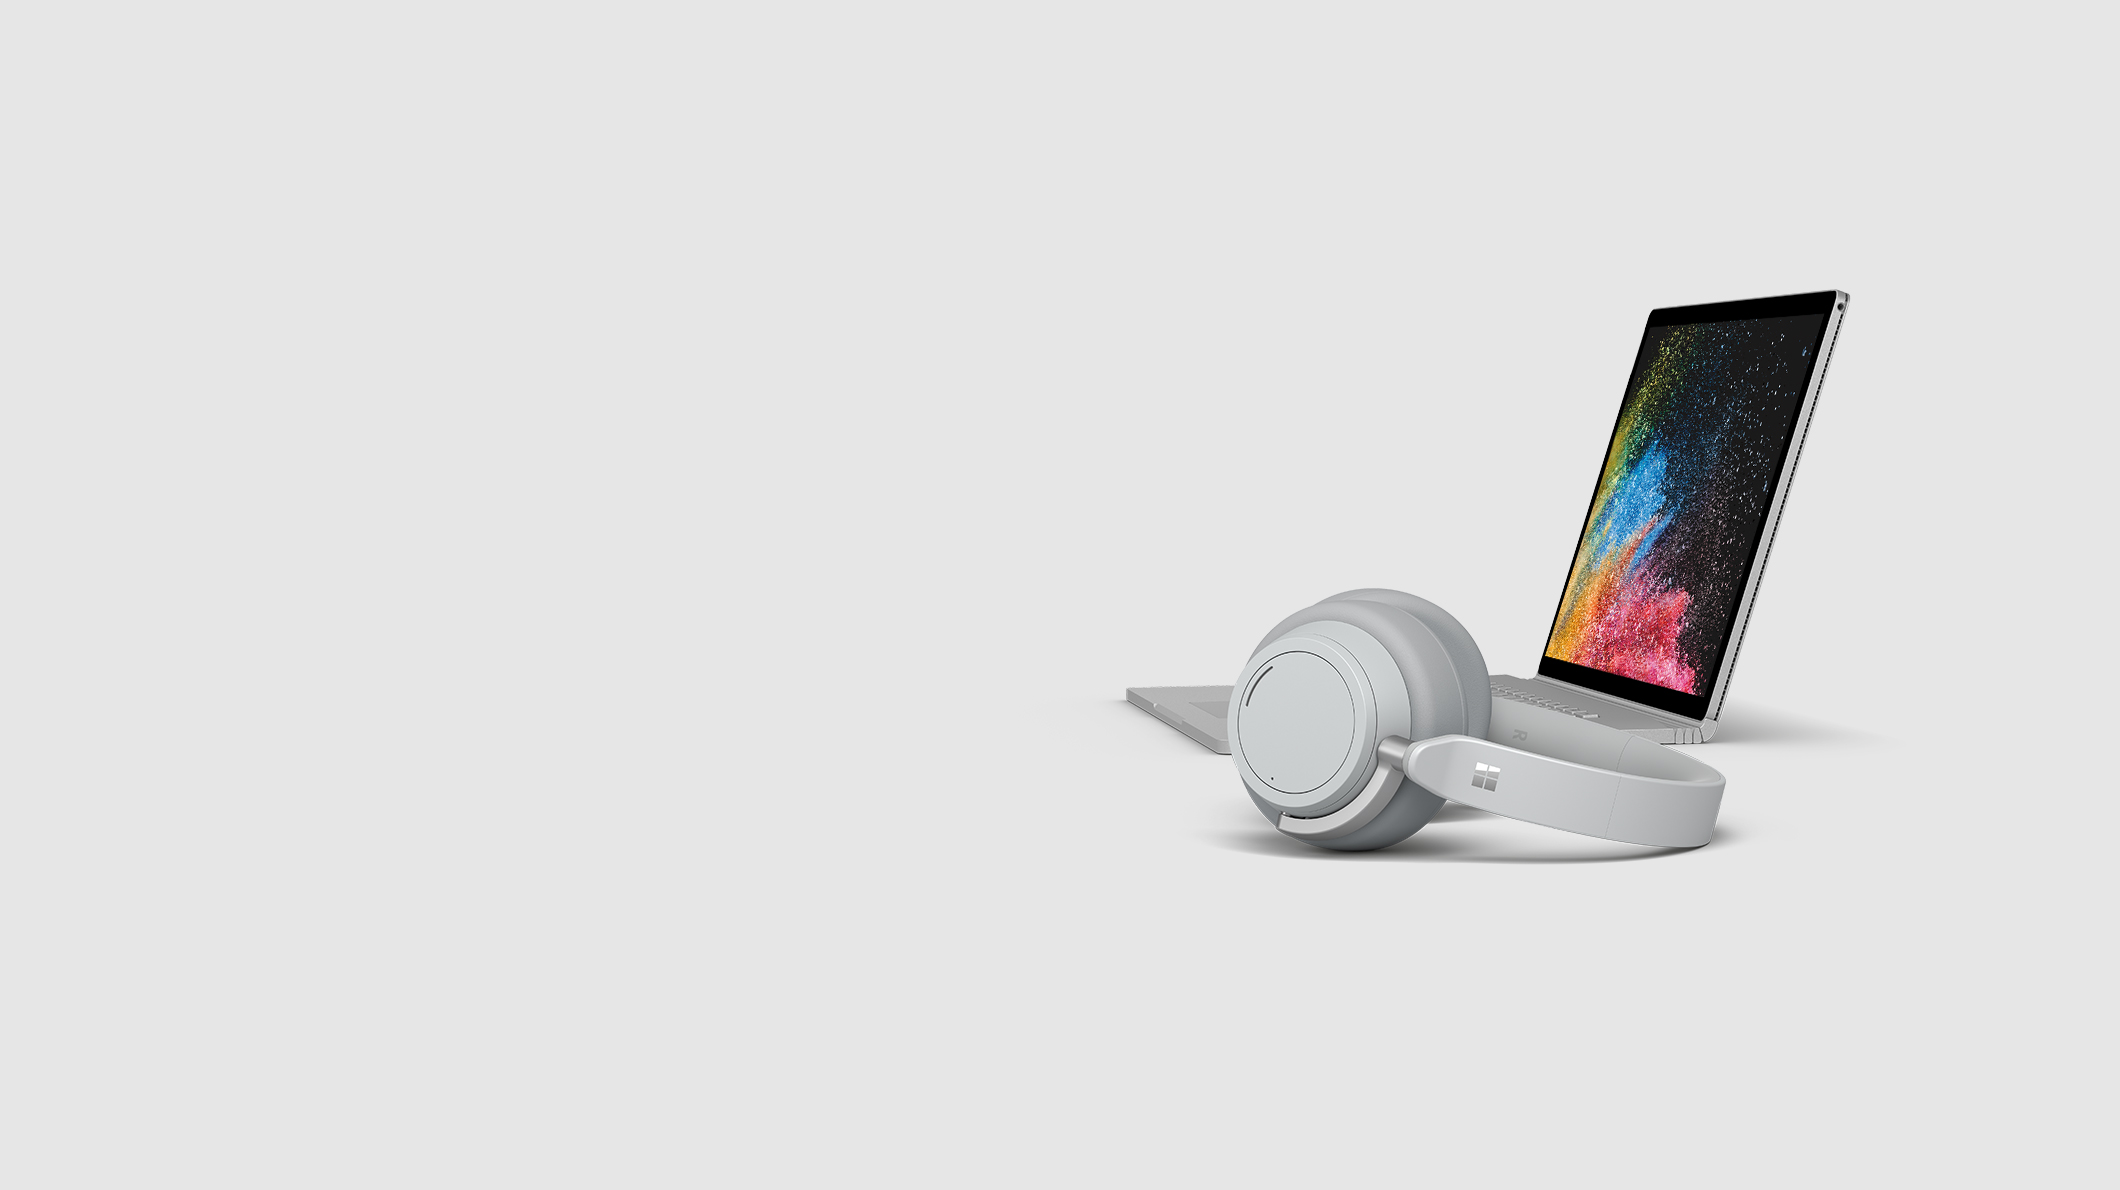 A Surface Book 2 sits with a pair of Surface headphones in front of it